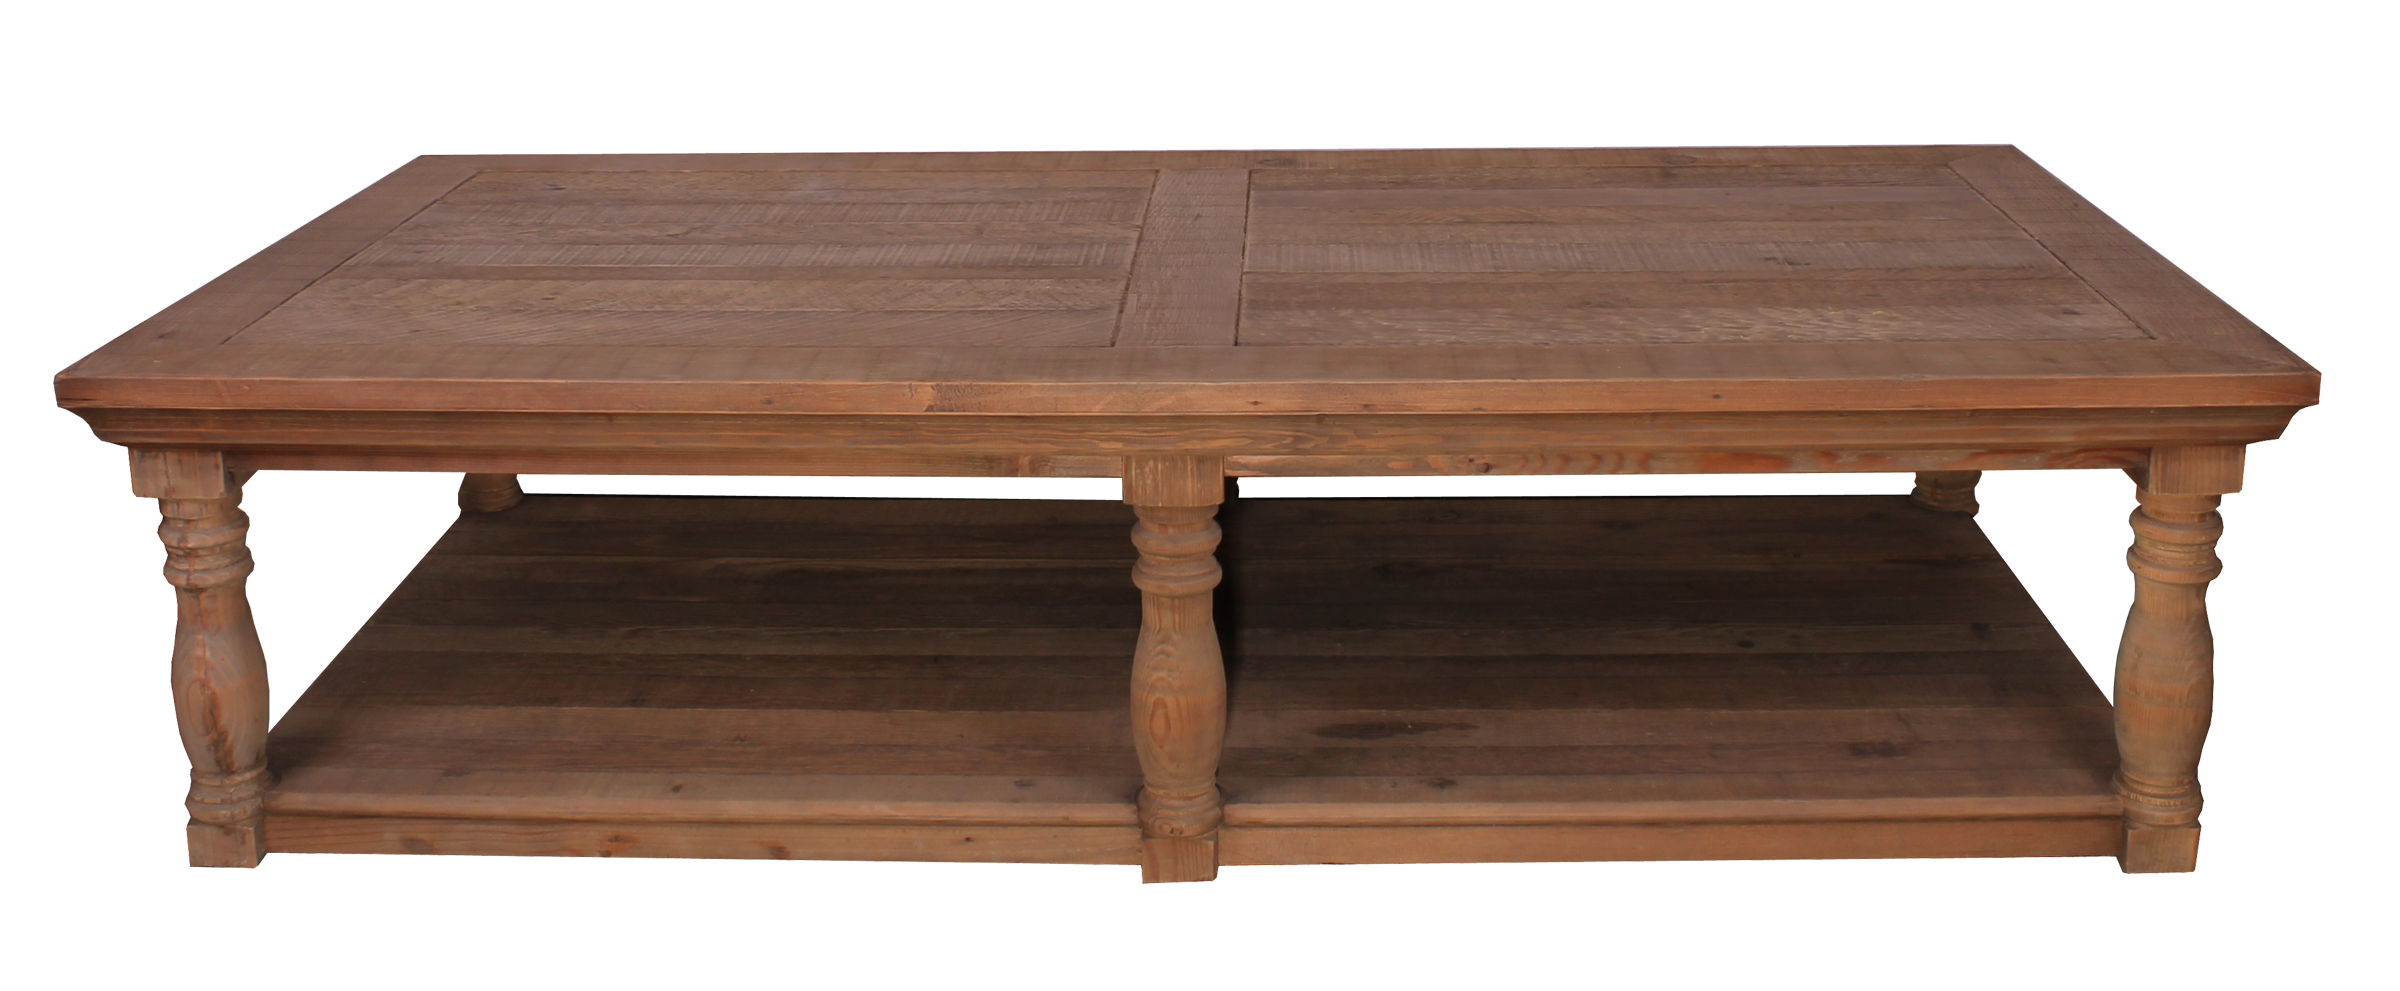 Table PNG - 8946